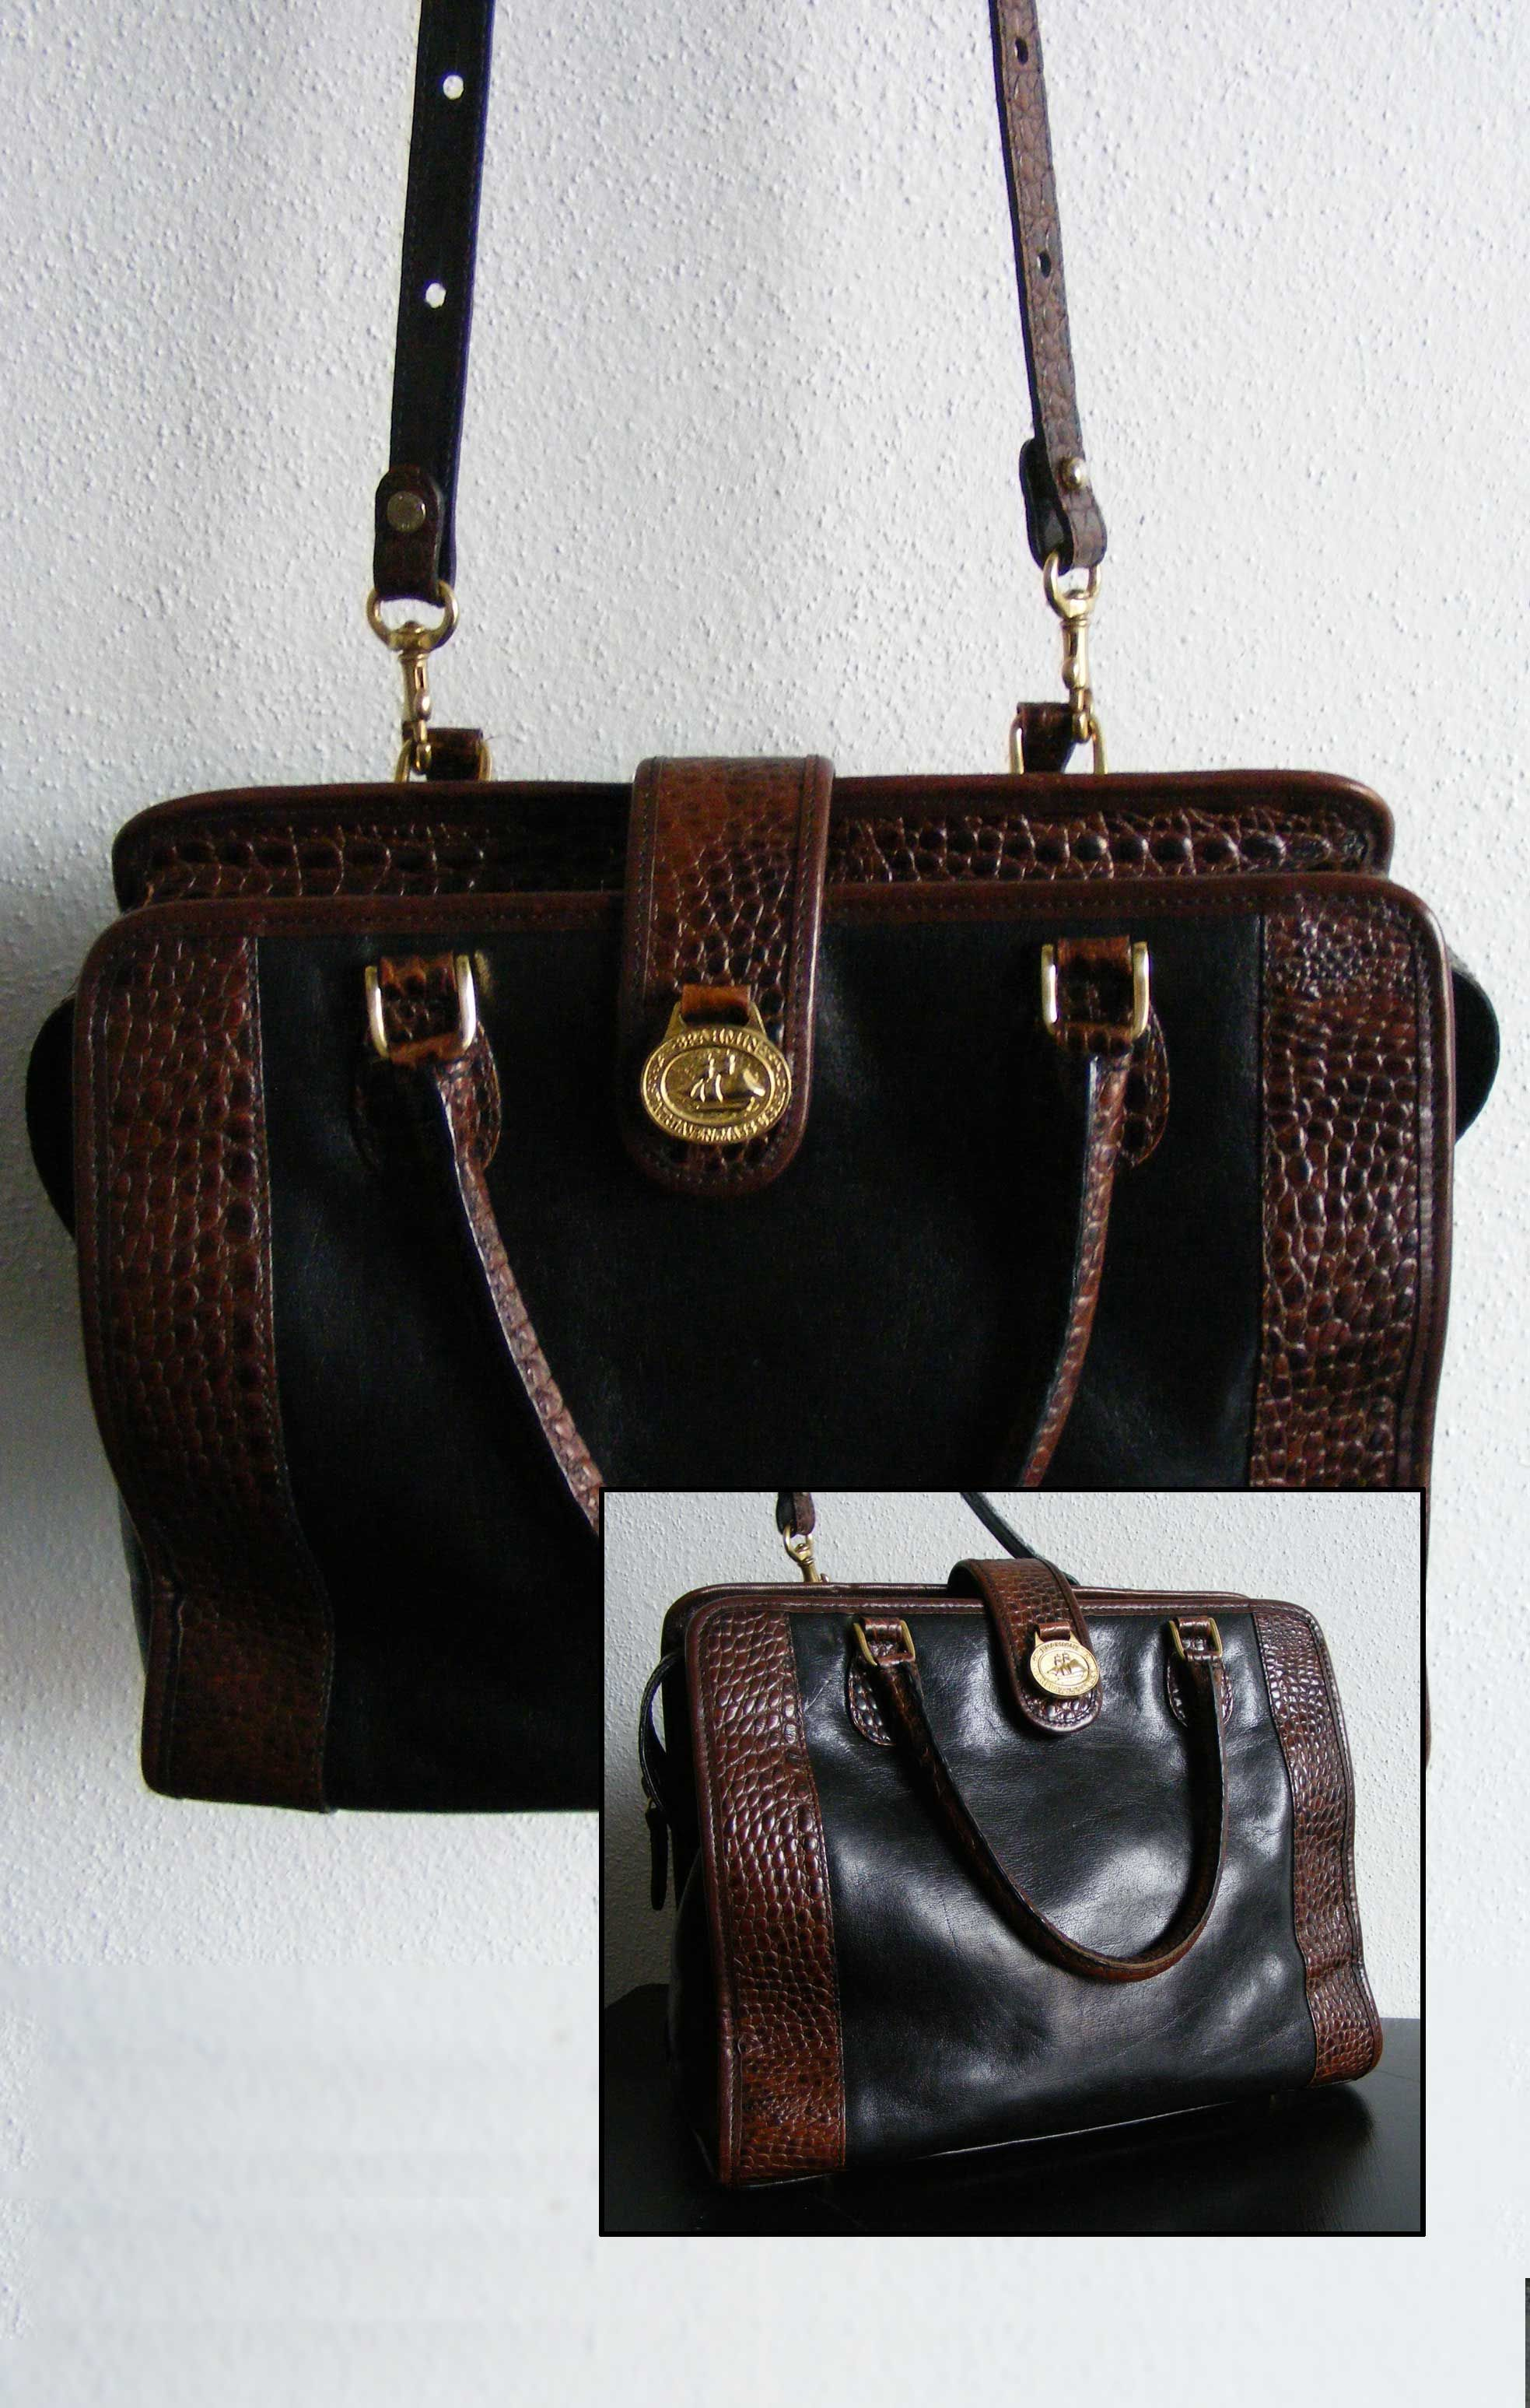 Cool Vintage Brahmin Handbag Sold Handbags Designer Totes On